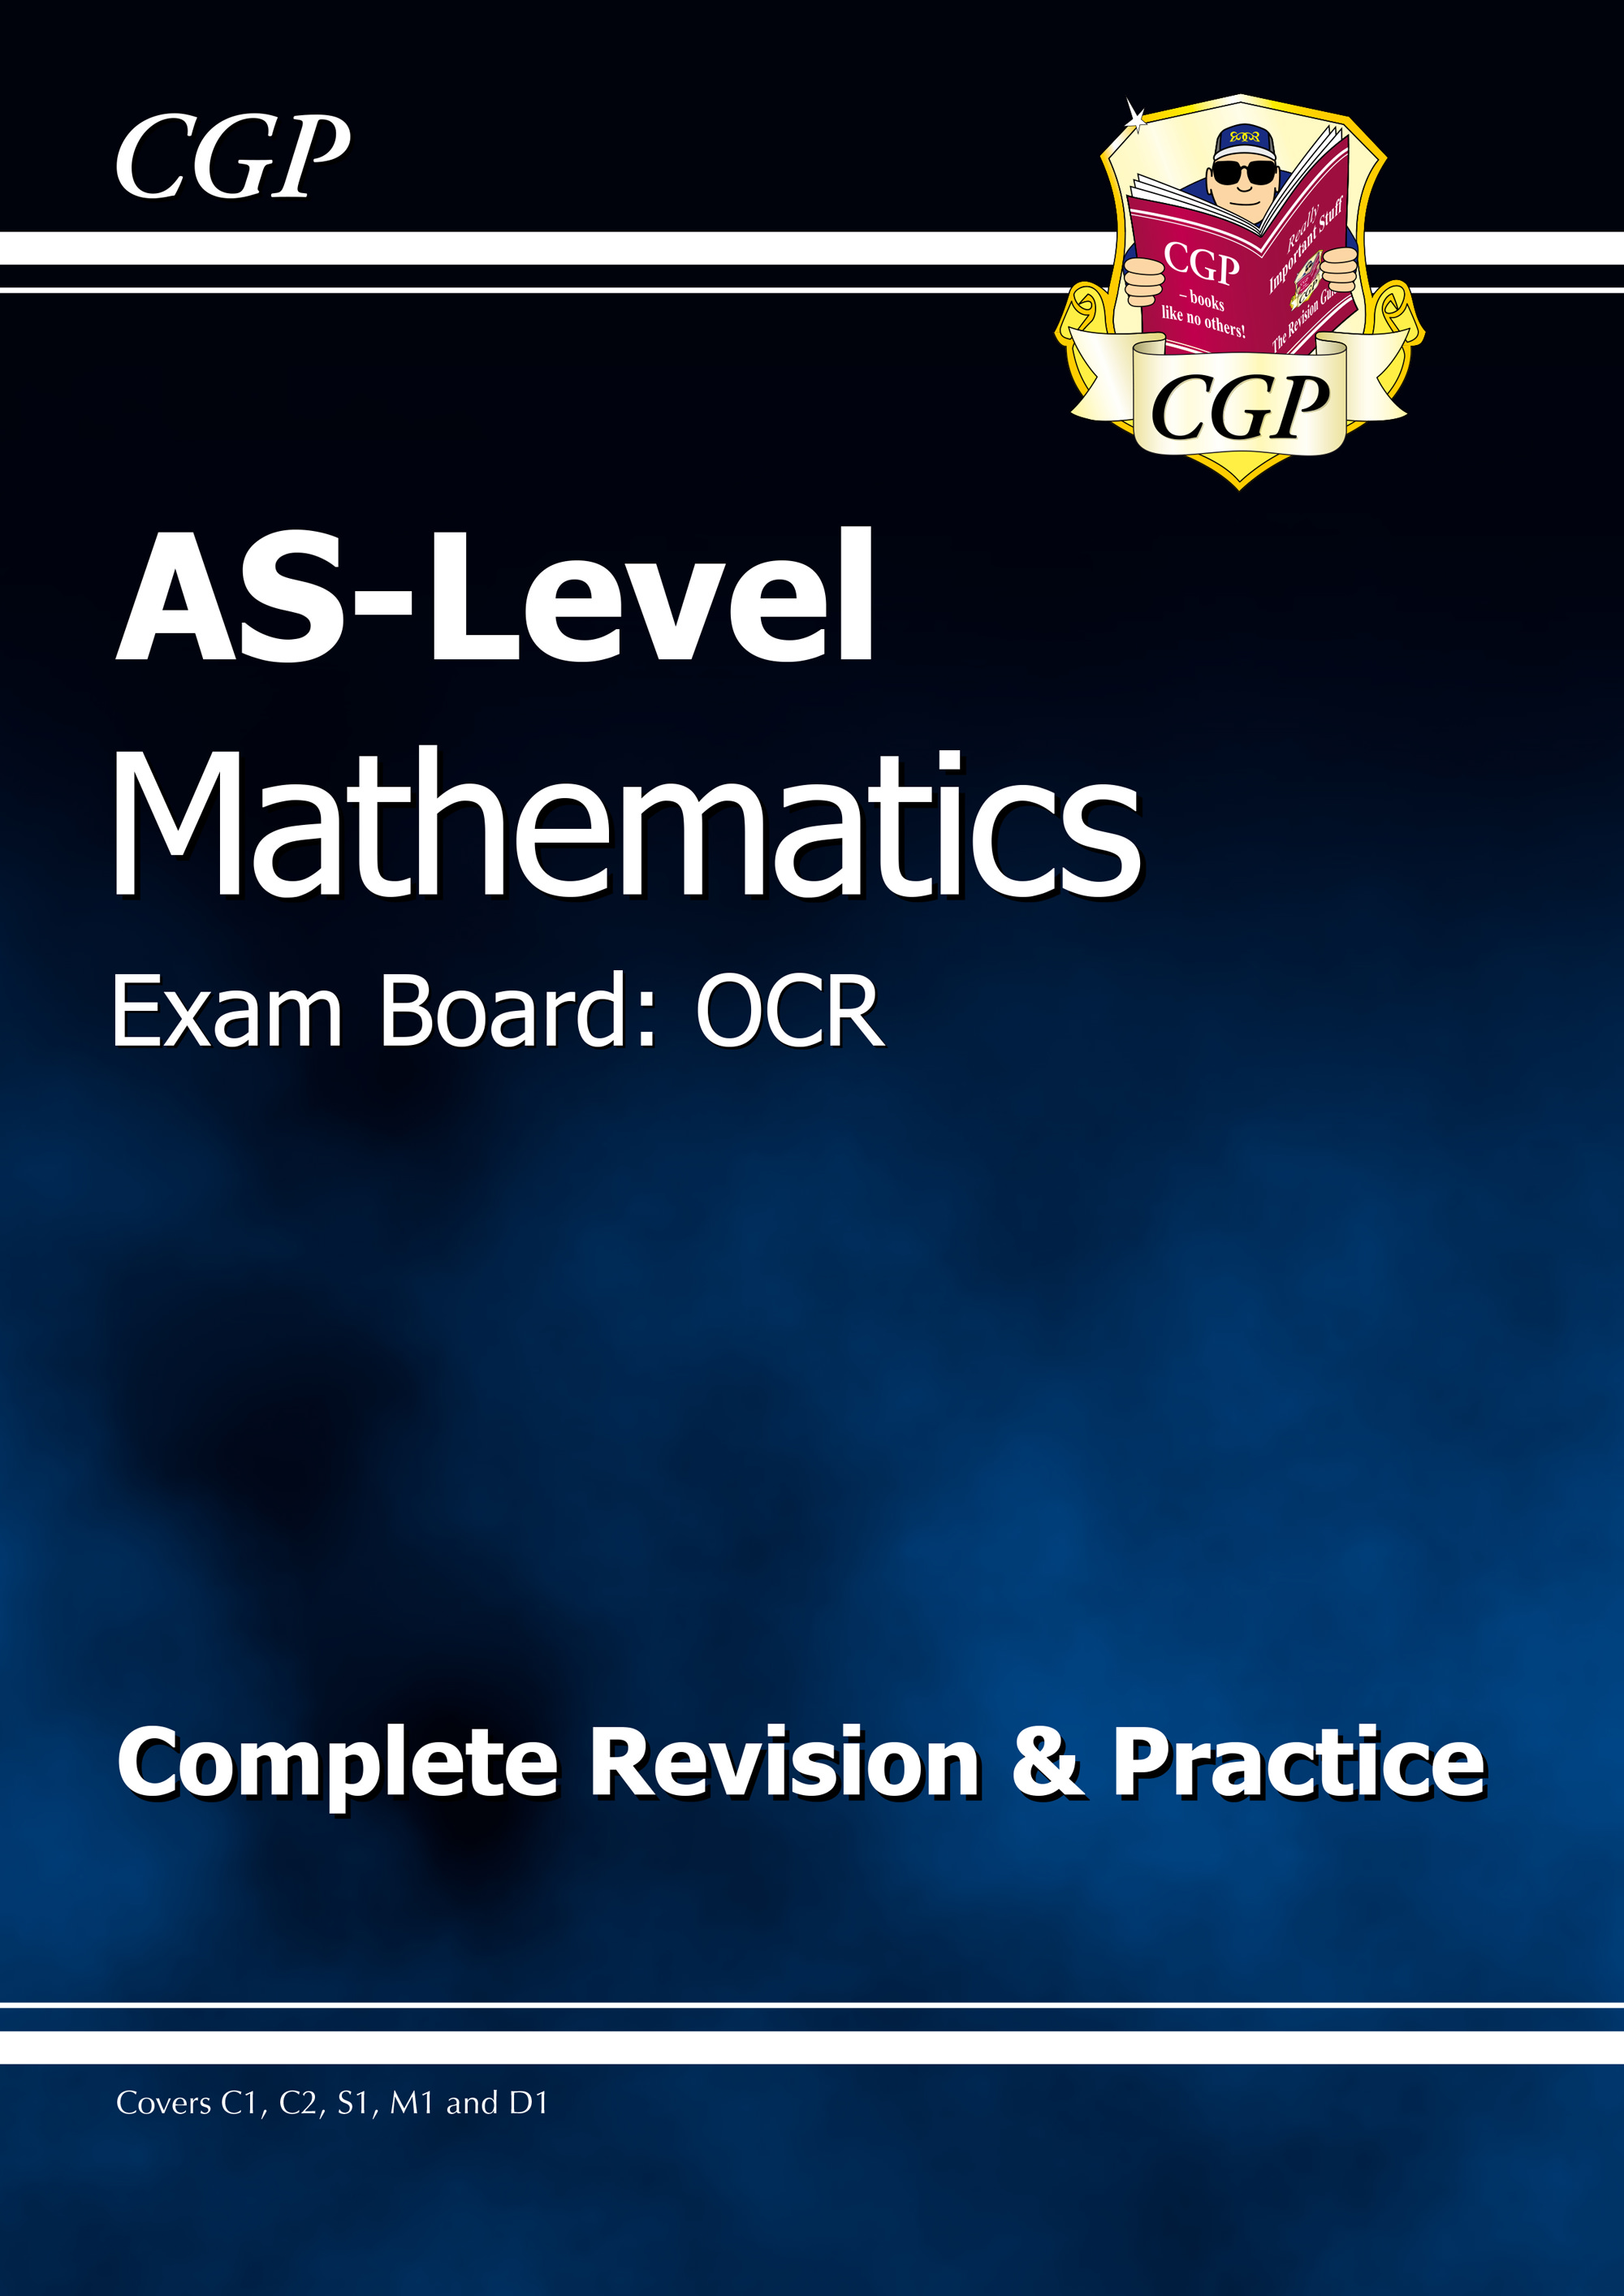 MRAR51DK - AS-Level Maths OCR Complete Revision & Practice